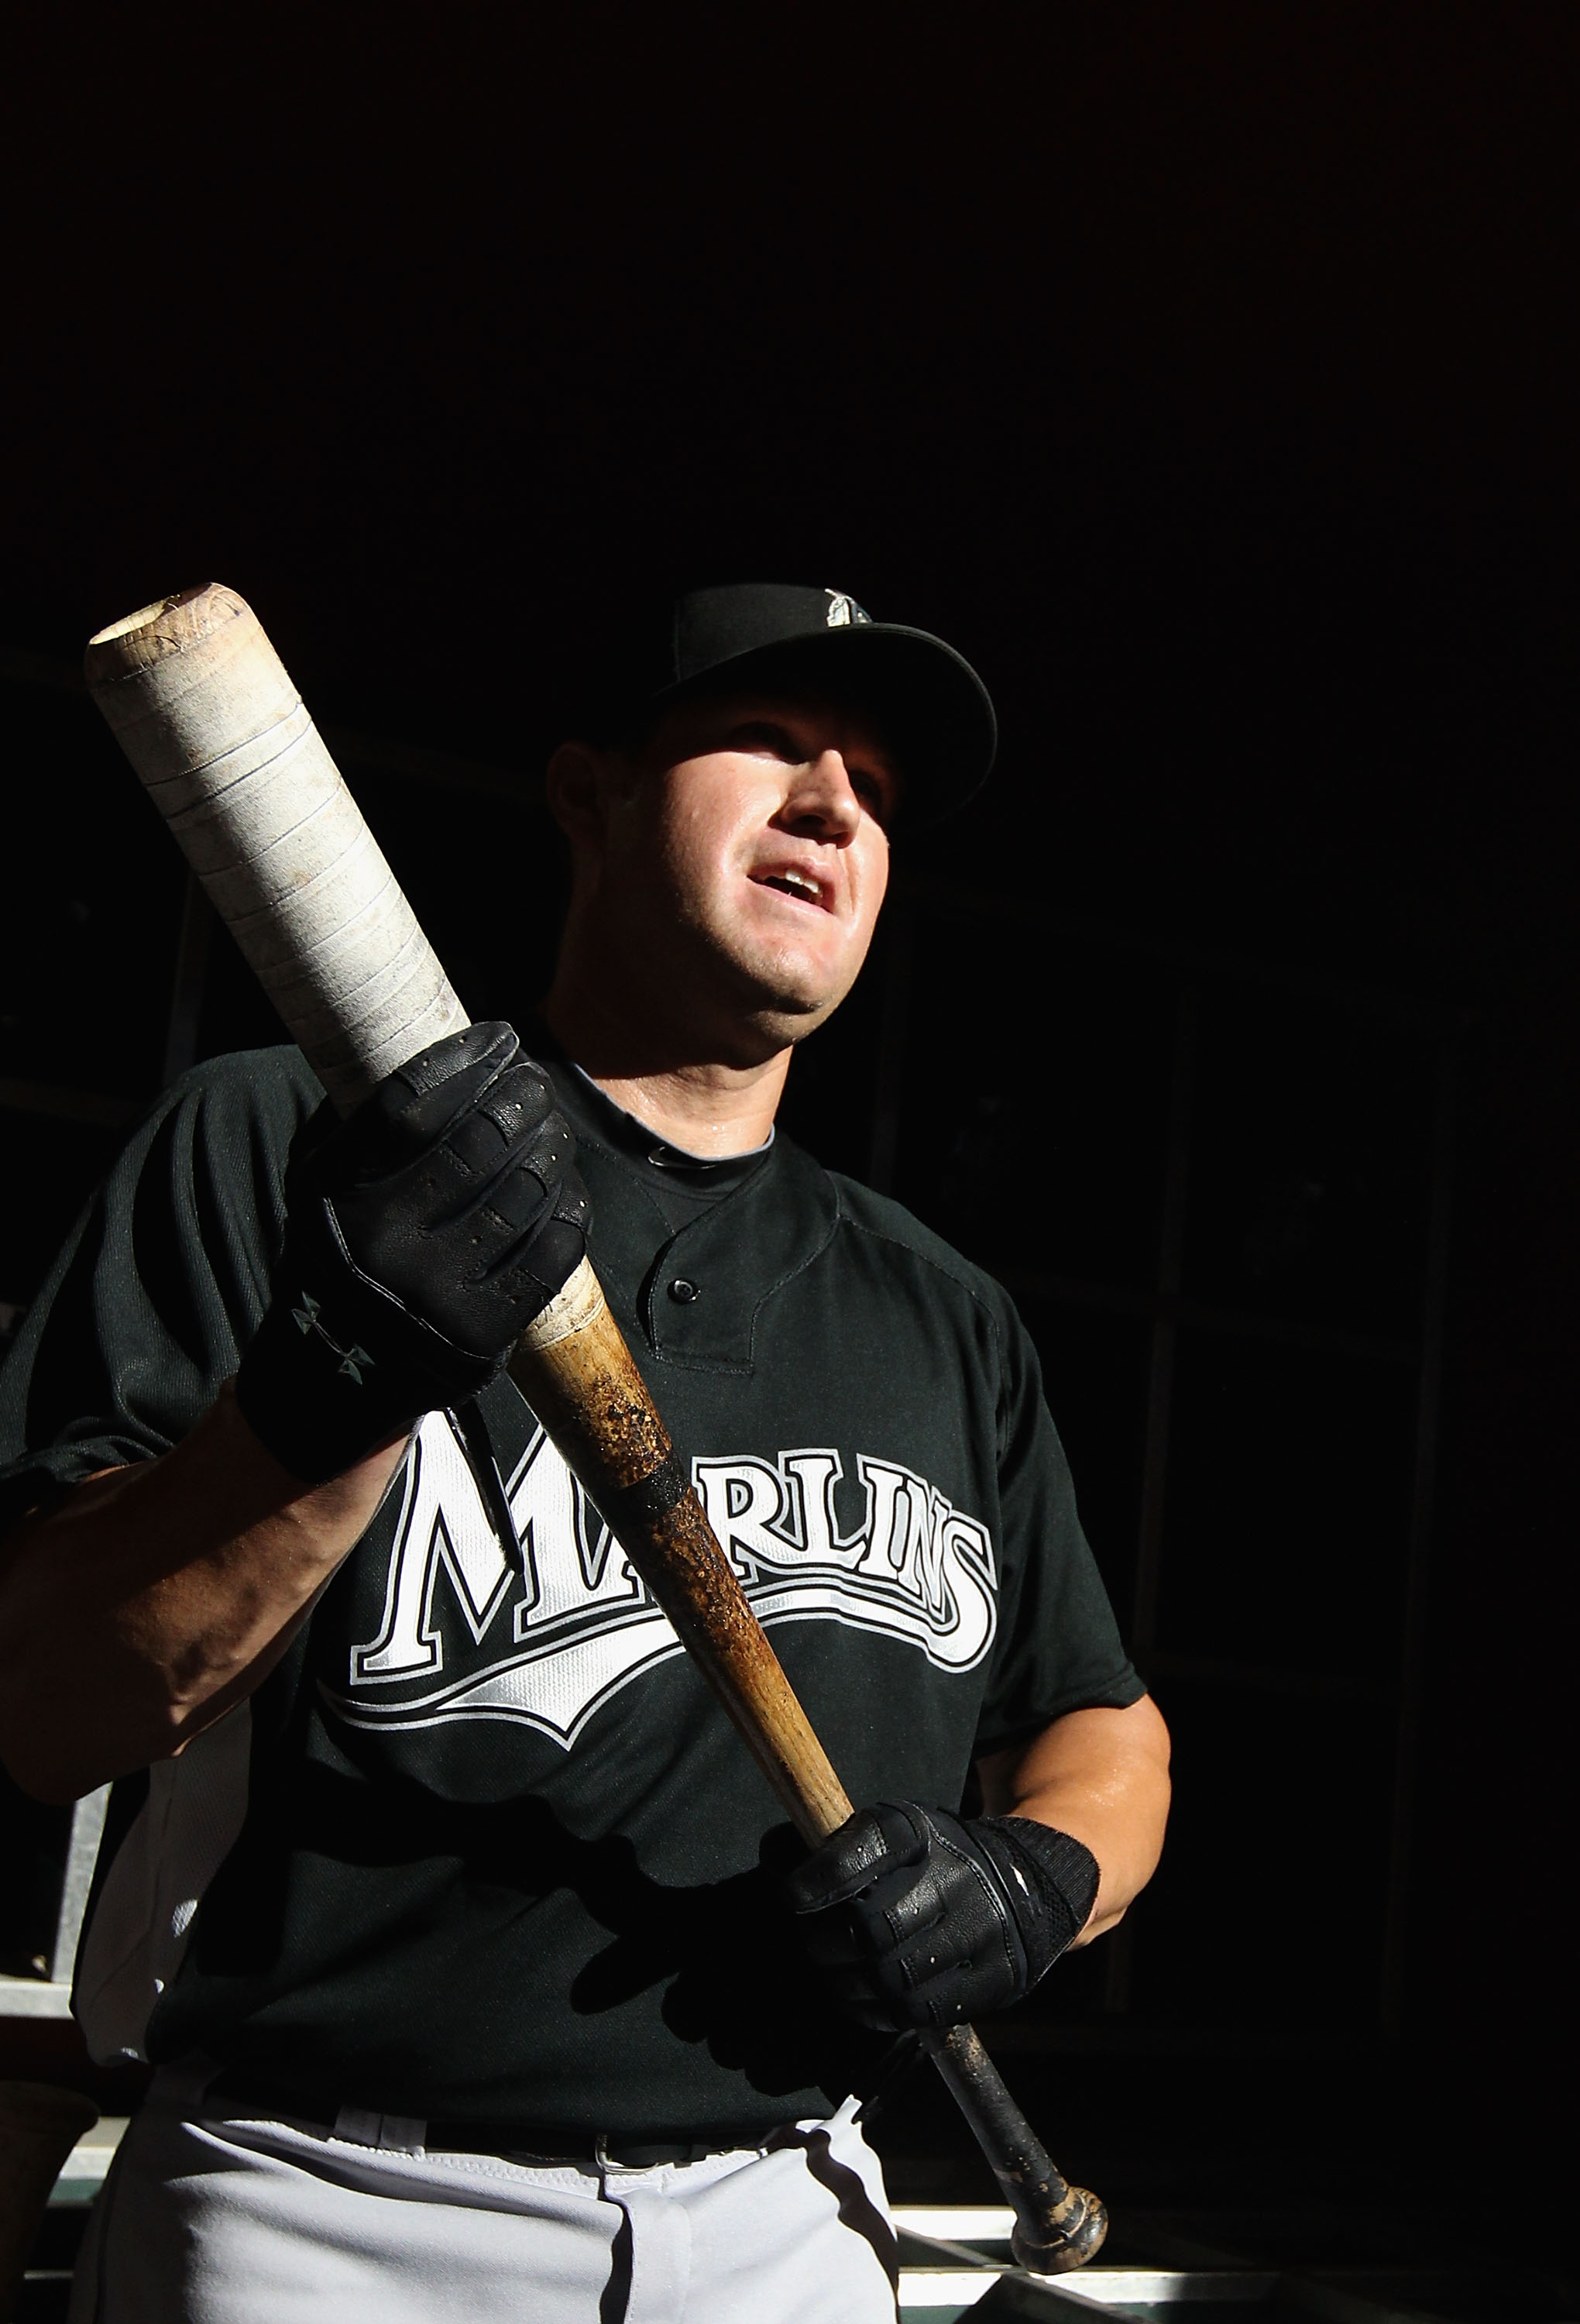 PHOENIX - JULY 08:  Wes Helms #18 of the Florida Marlins warms up before the Major League Baseball game against the Arizona Diamondbacks at Chase Field on July 8, 2010 in Phoenix, Arizona. The Diamondbacks defeated the Marlins 10-4.  (Photo by Christian P